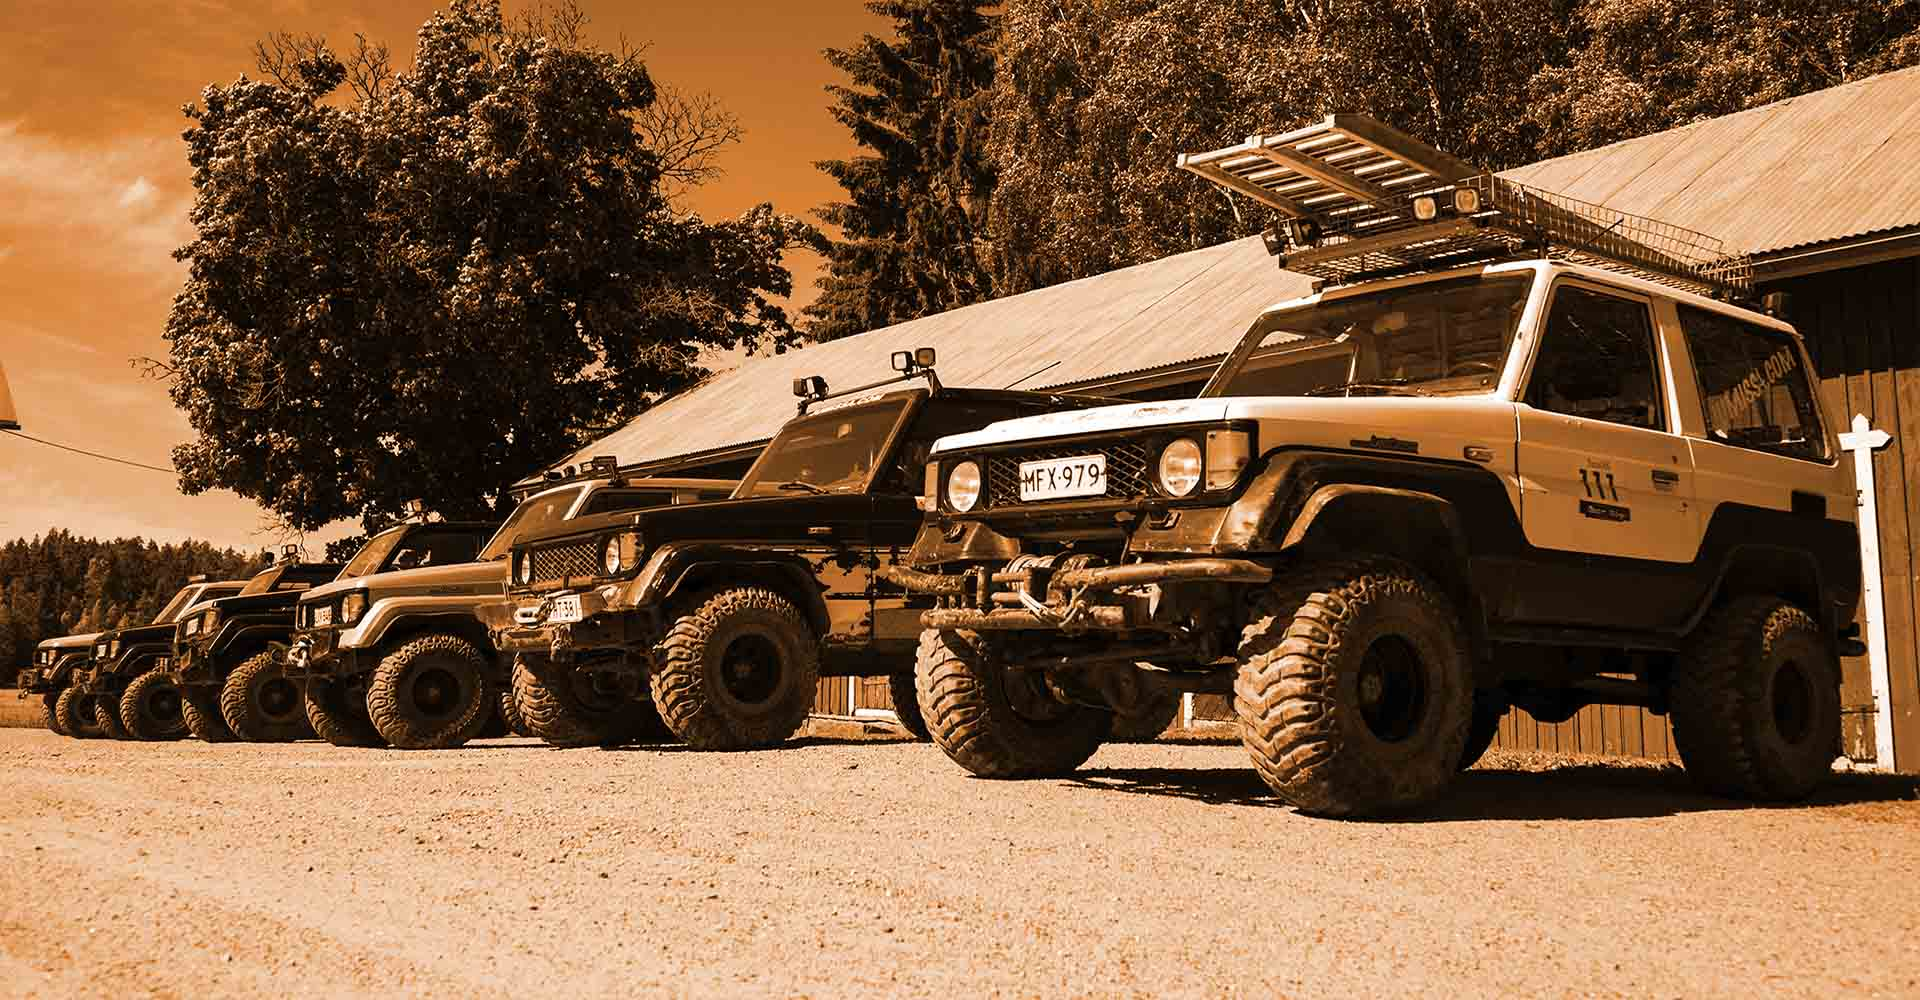 Off-road safaris